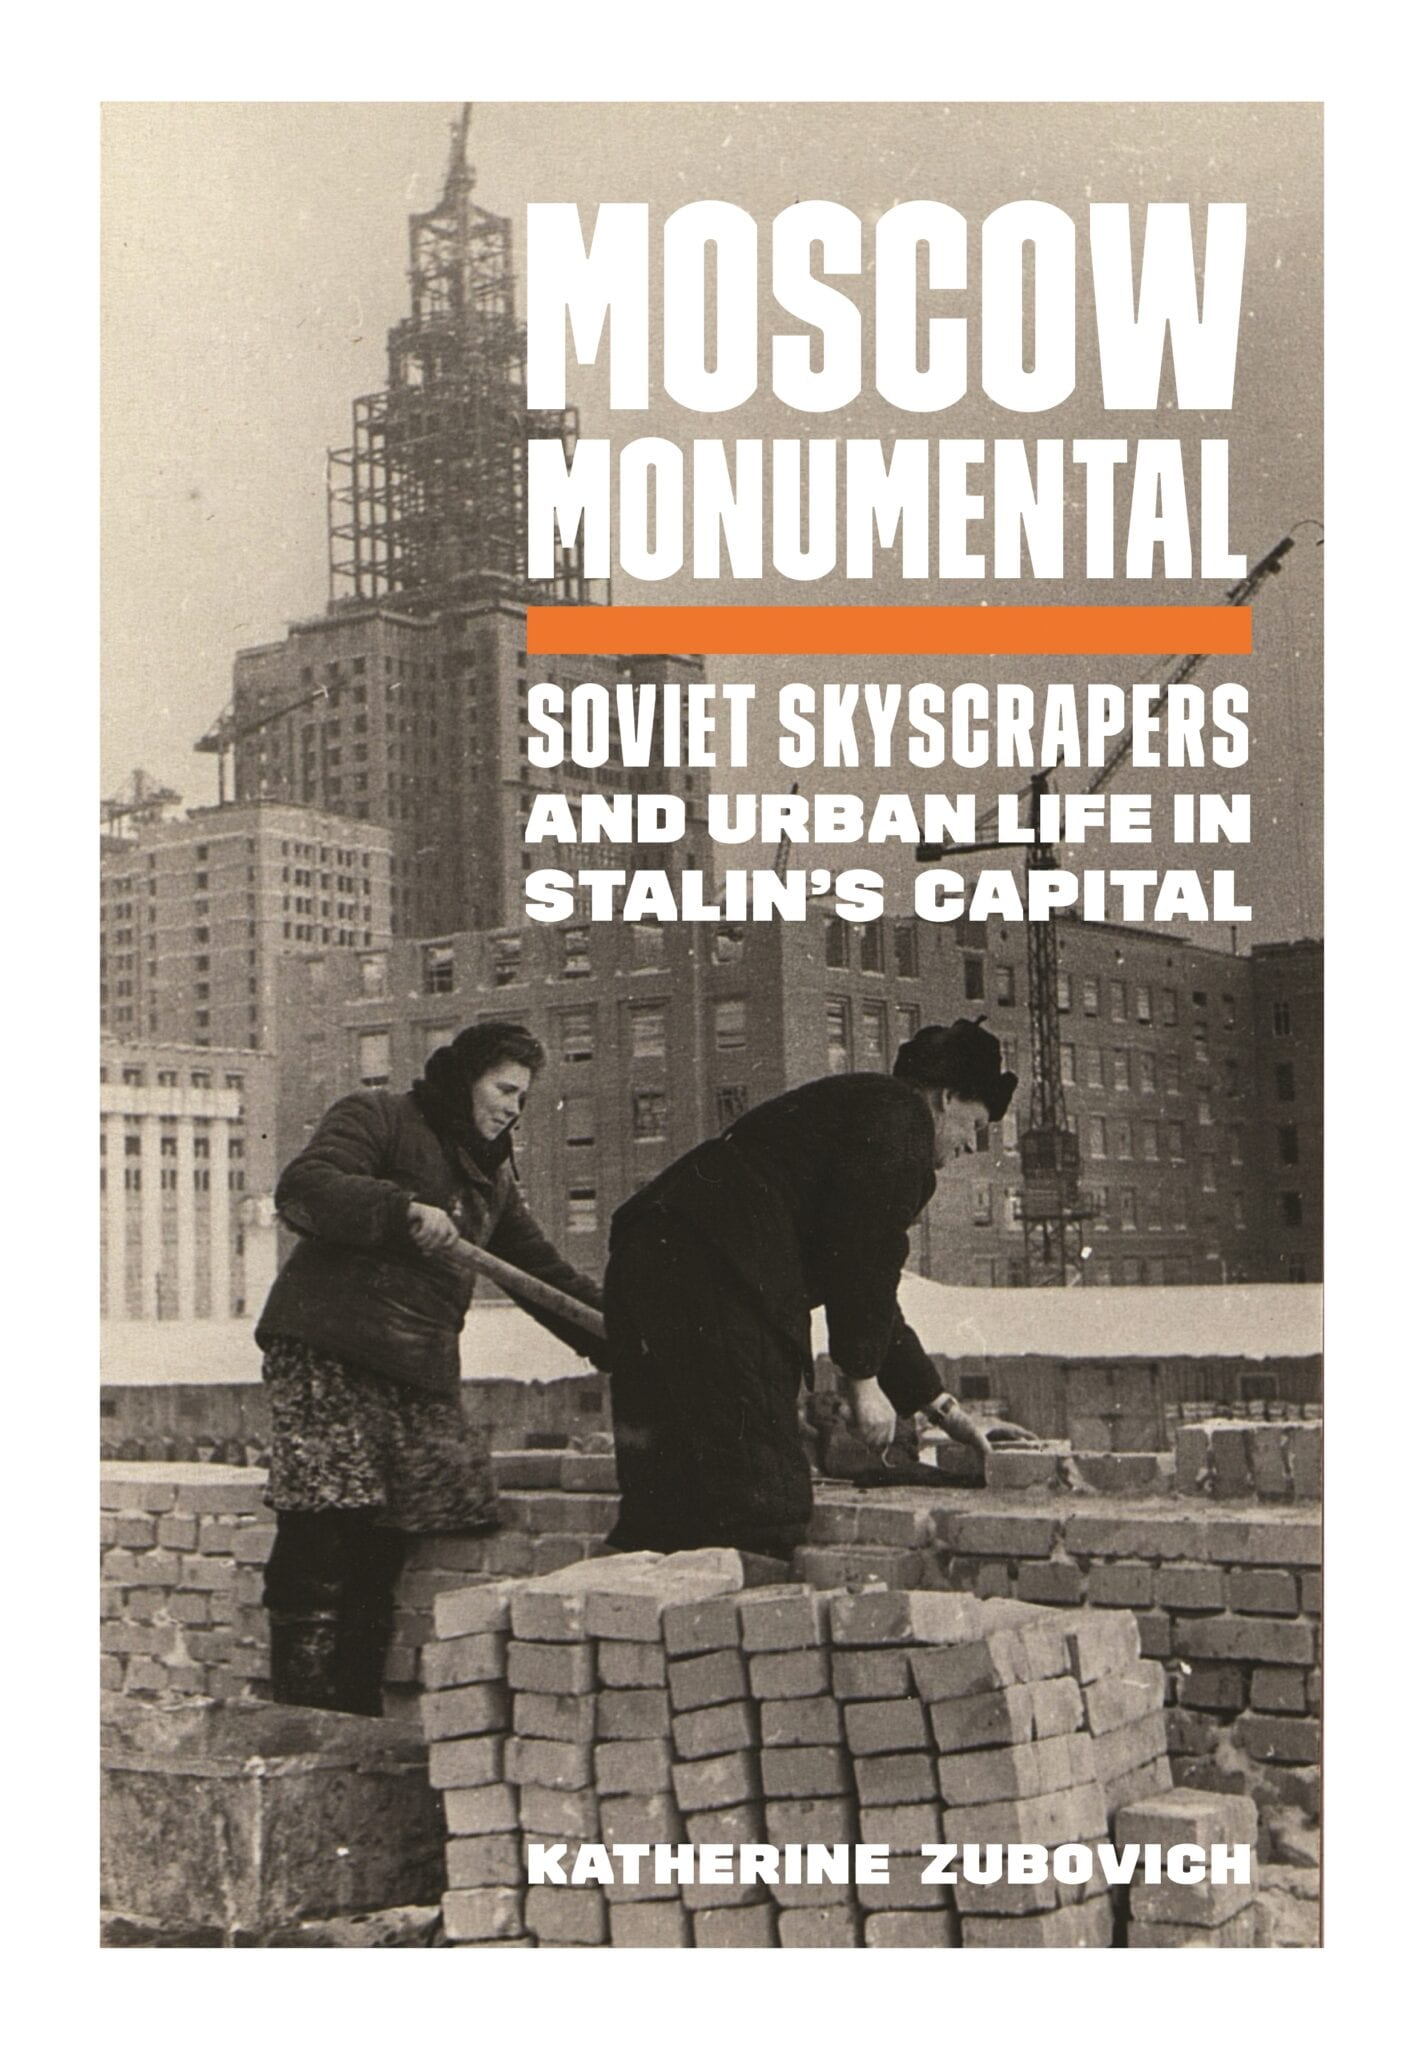 Cover art of Moscow Monumental